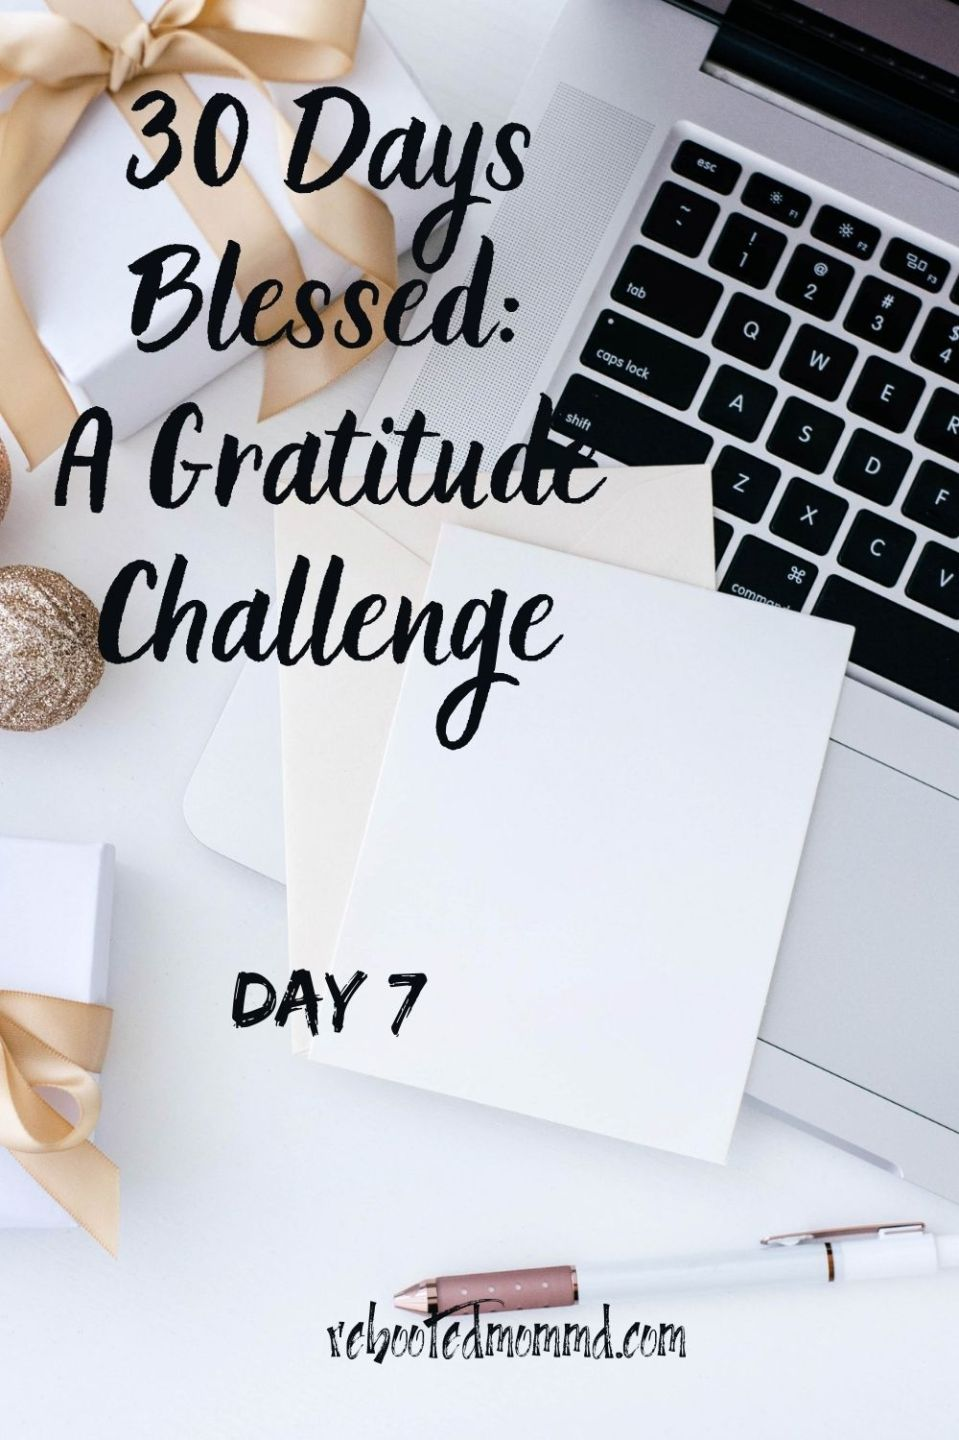 Day 7: Hard Times Help Us Appreciate the Good